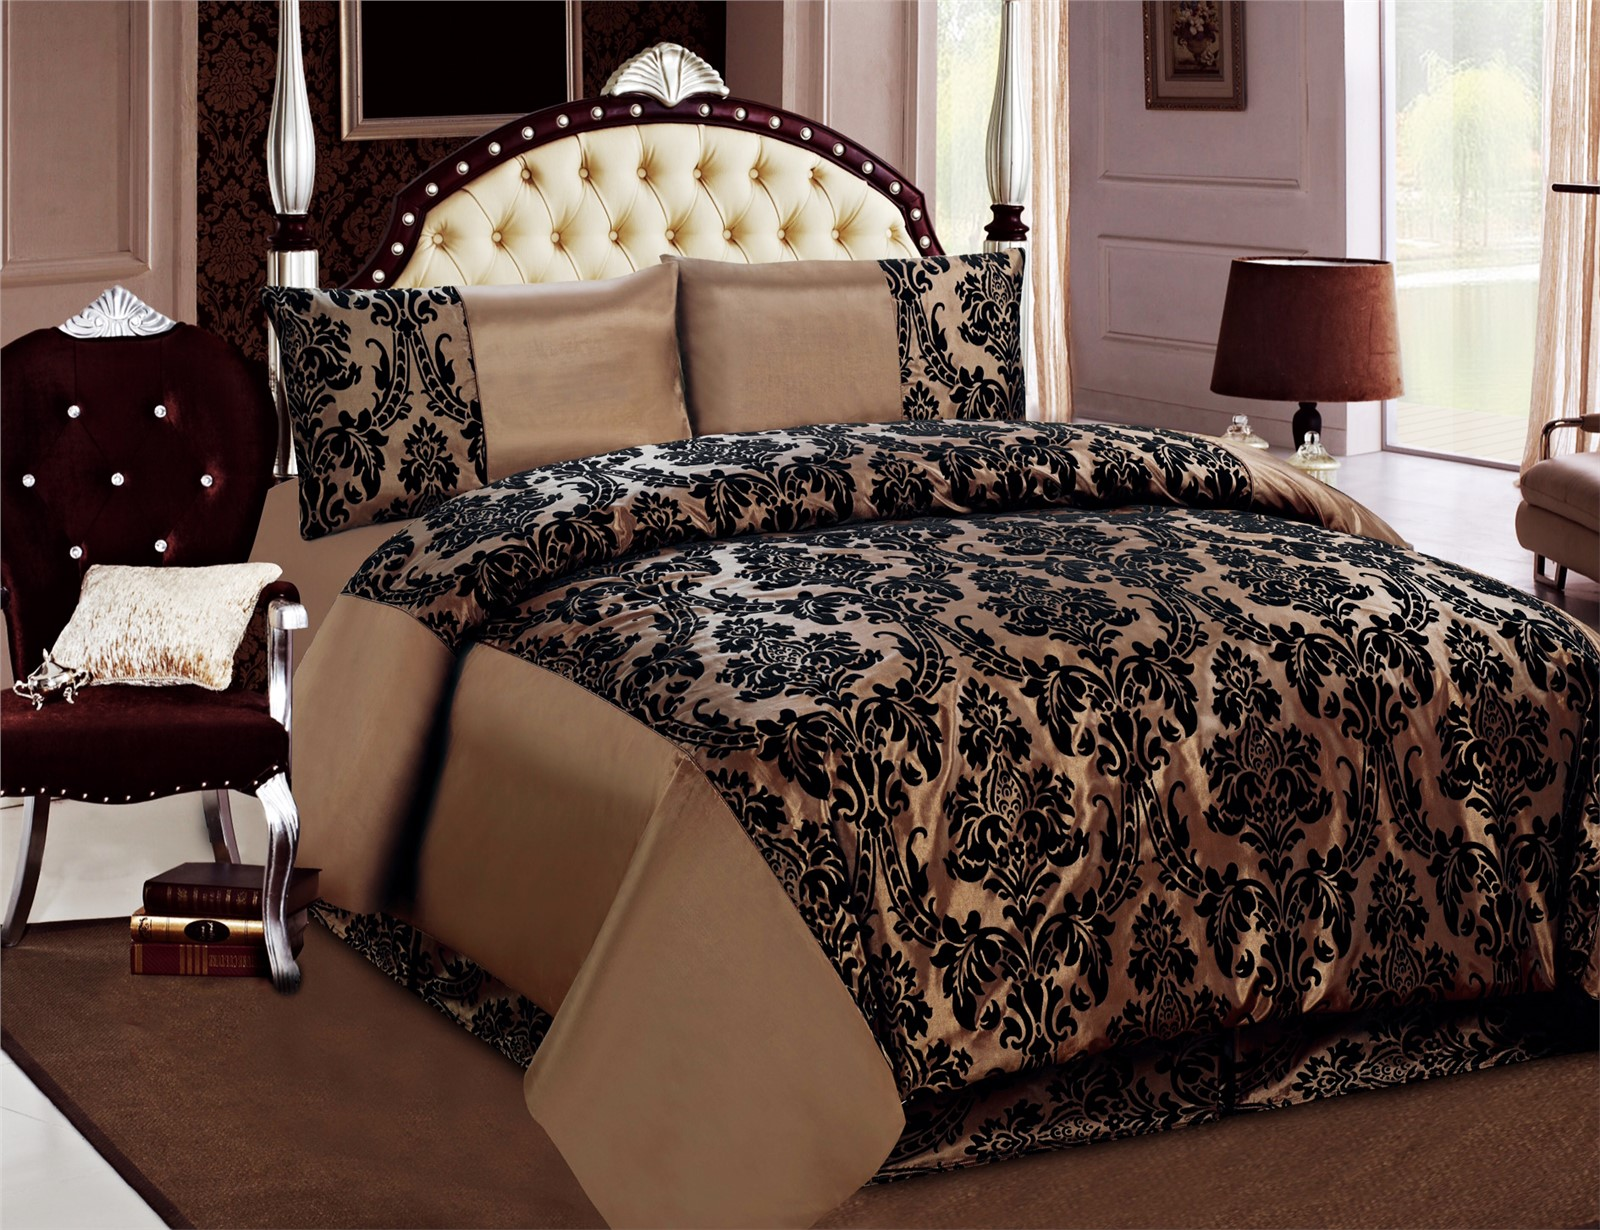 4 Pcs Duvet Cover Damask Quilted Luxury Bedding Comforter